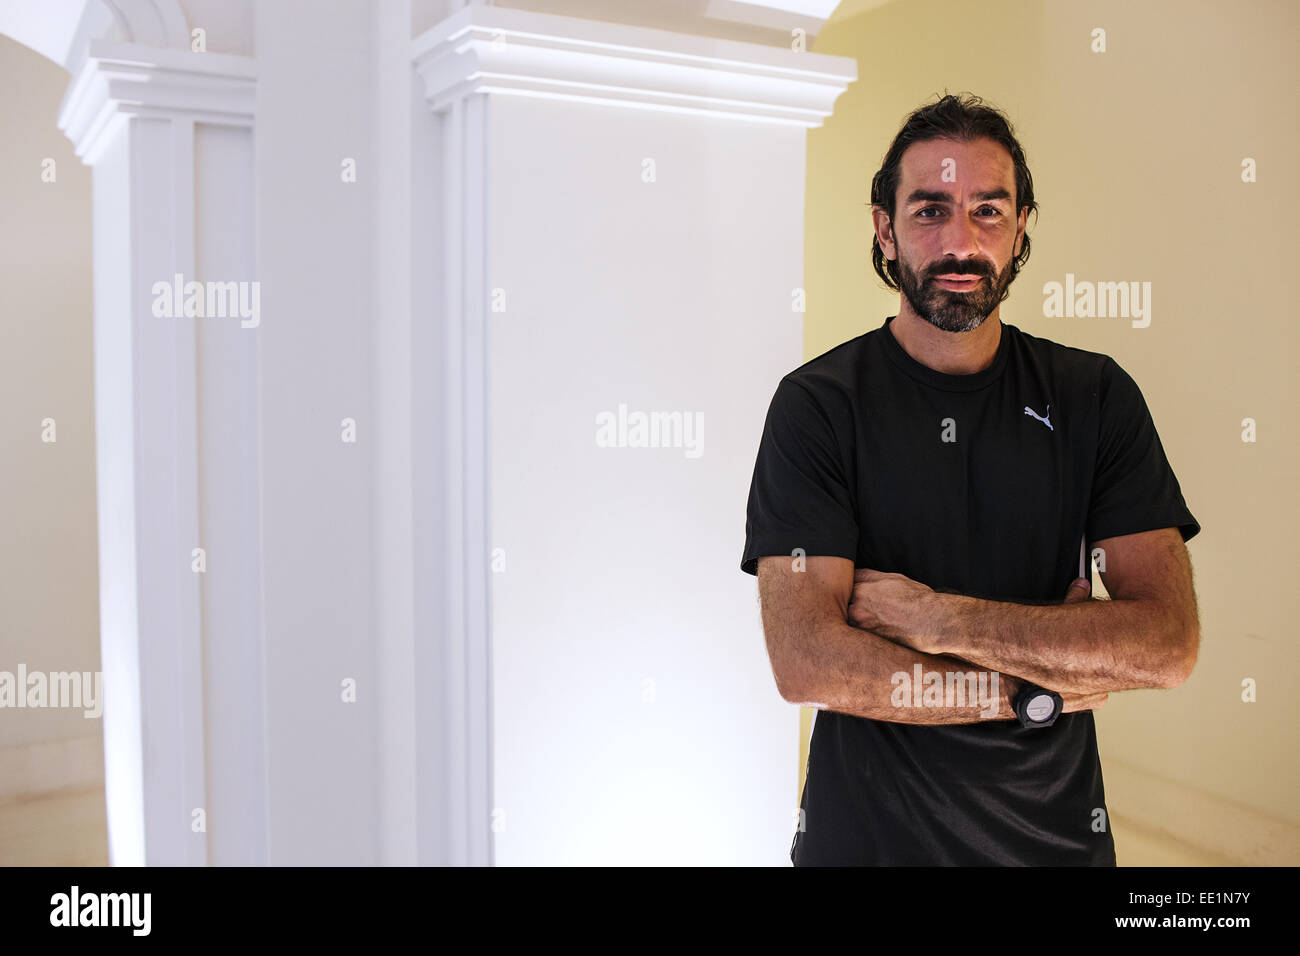 A portrait of Robert Pires - a French football player who plays for FC Goa in the Indian Super League. Goa, India, - Stock Image